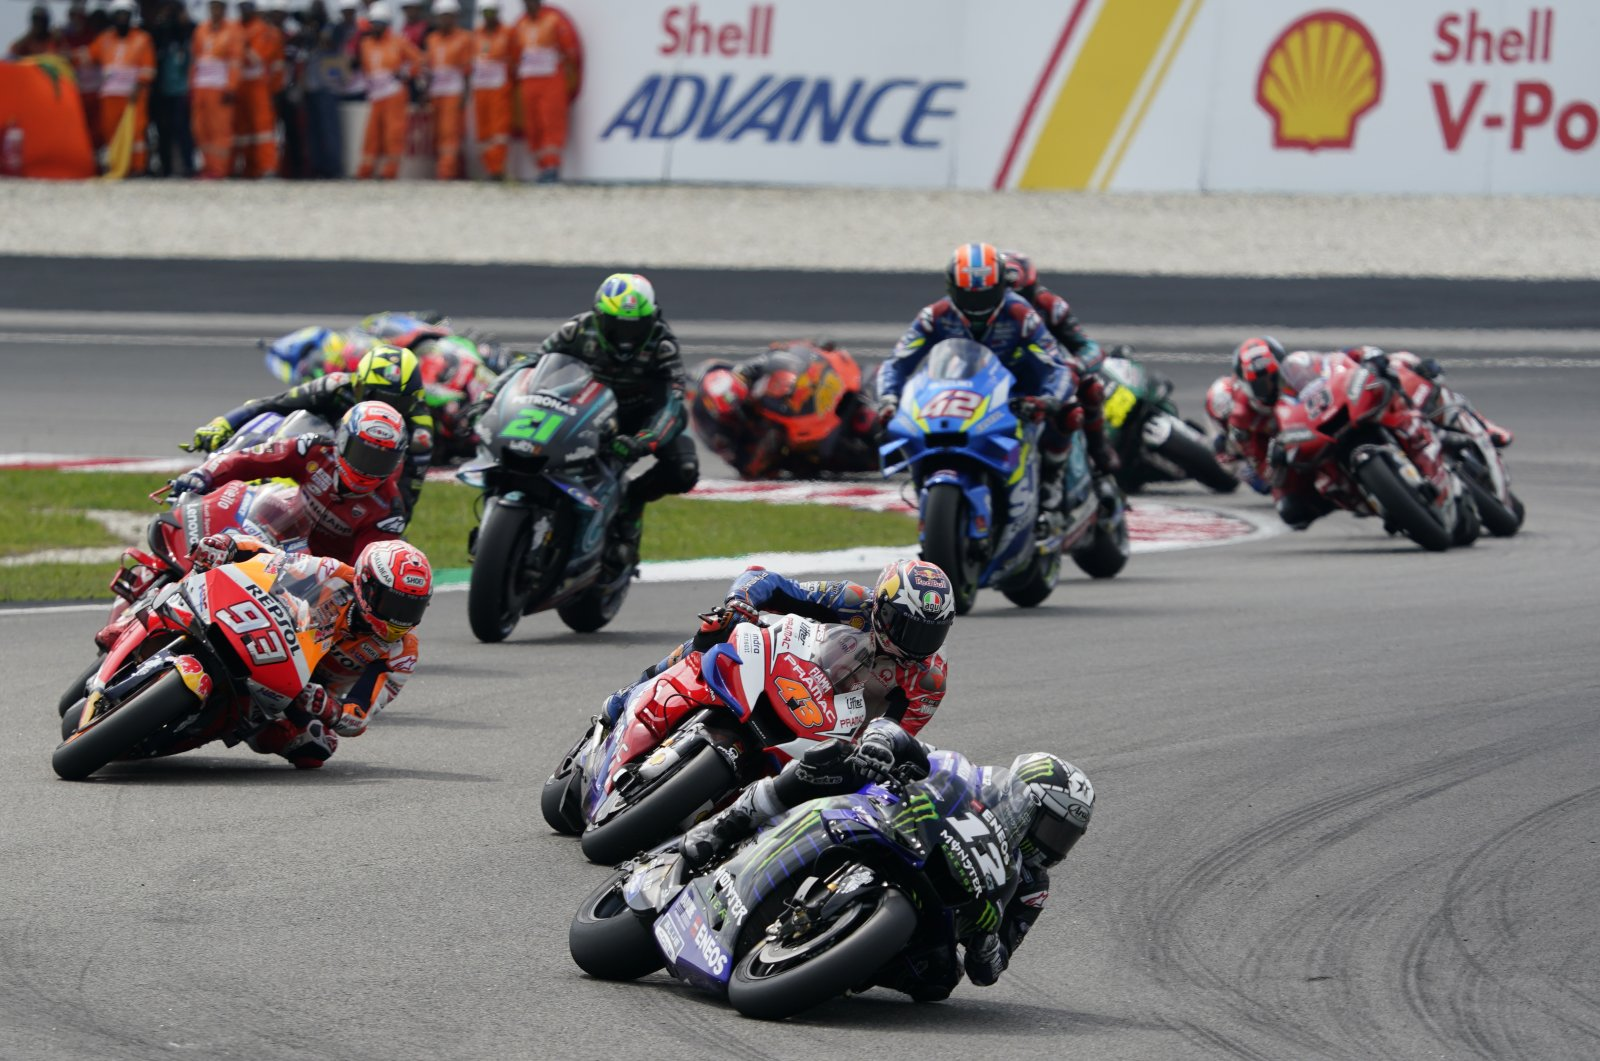 Maverick Vinales in the lead during the Malaysia GP in Sepang, Malaysia, Nov. 3, 2019. (AP Photo)